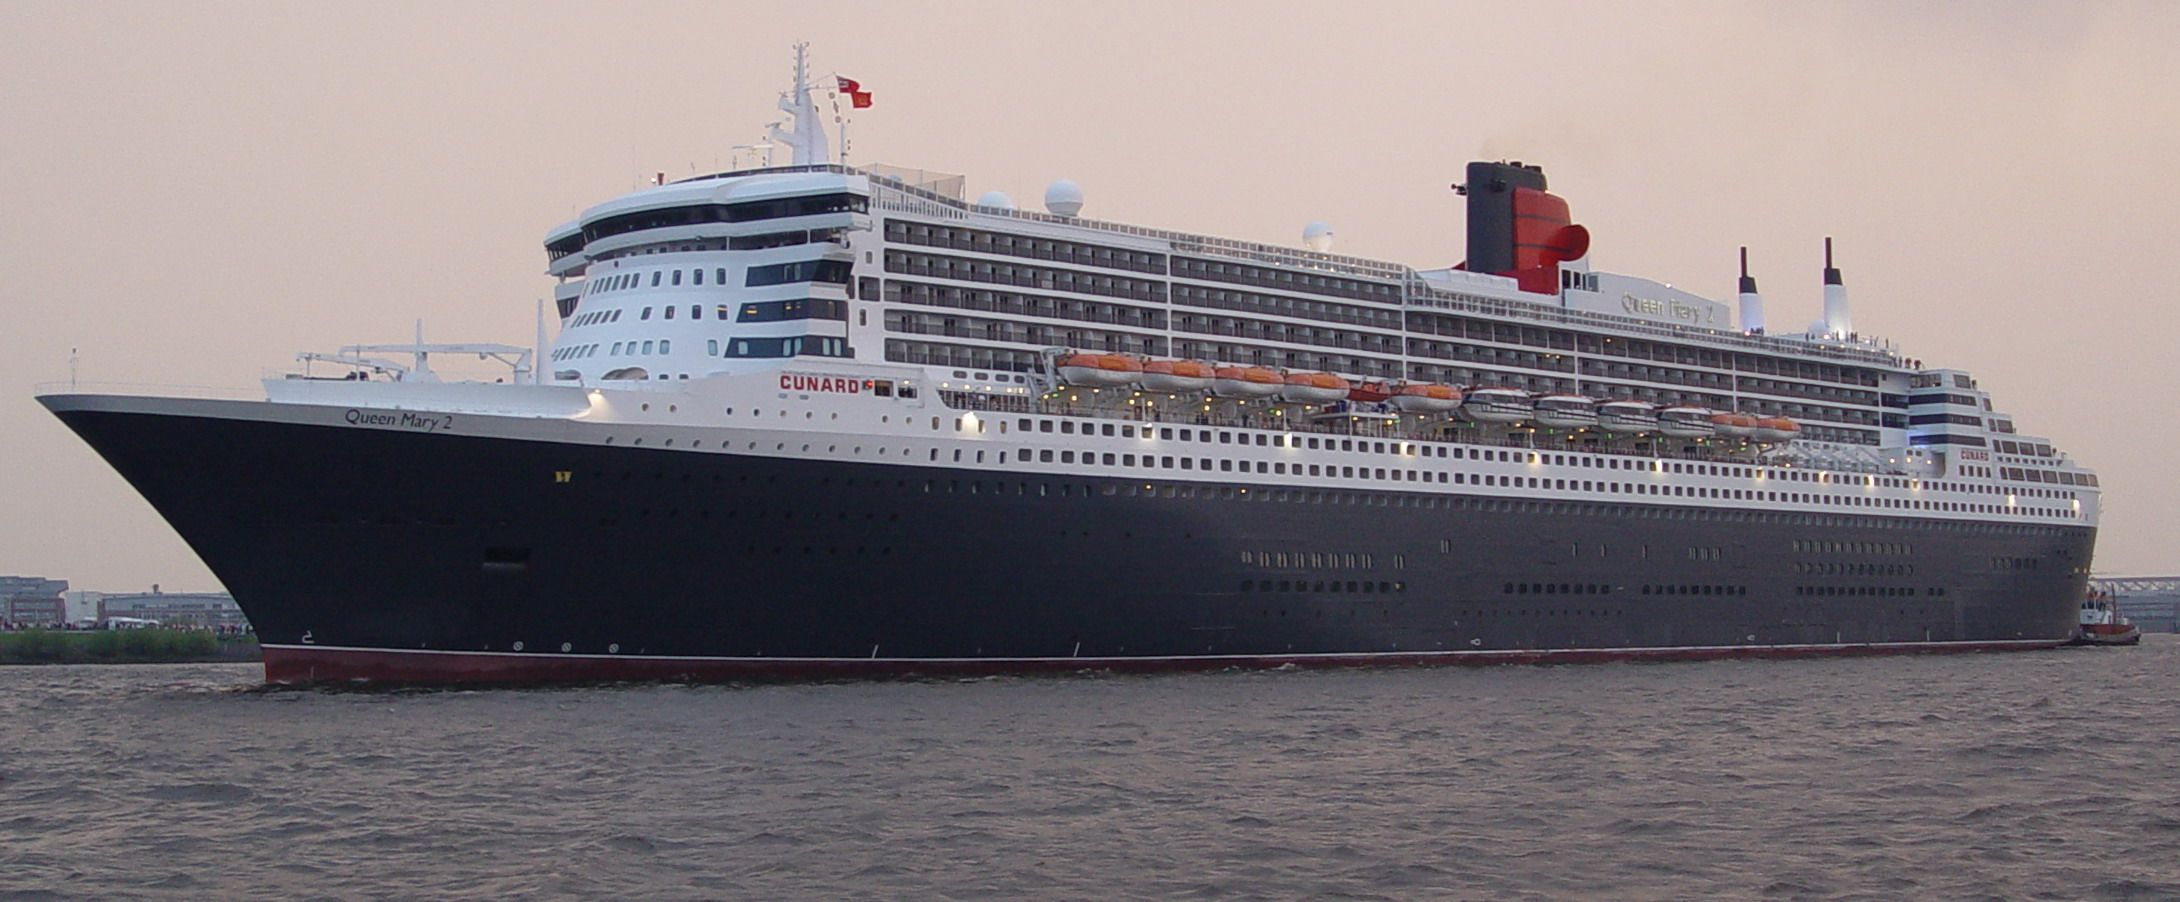 The Queen Mary Ii I Want To Go On A Cruise And I Figure This Is The Best Way To Start Both My Parents Came To Amer Cunard Line Cruise Ship